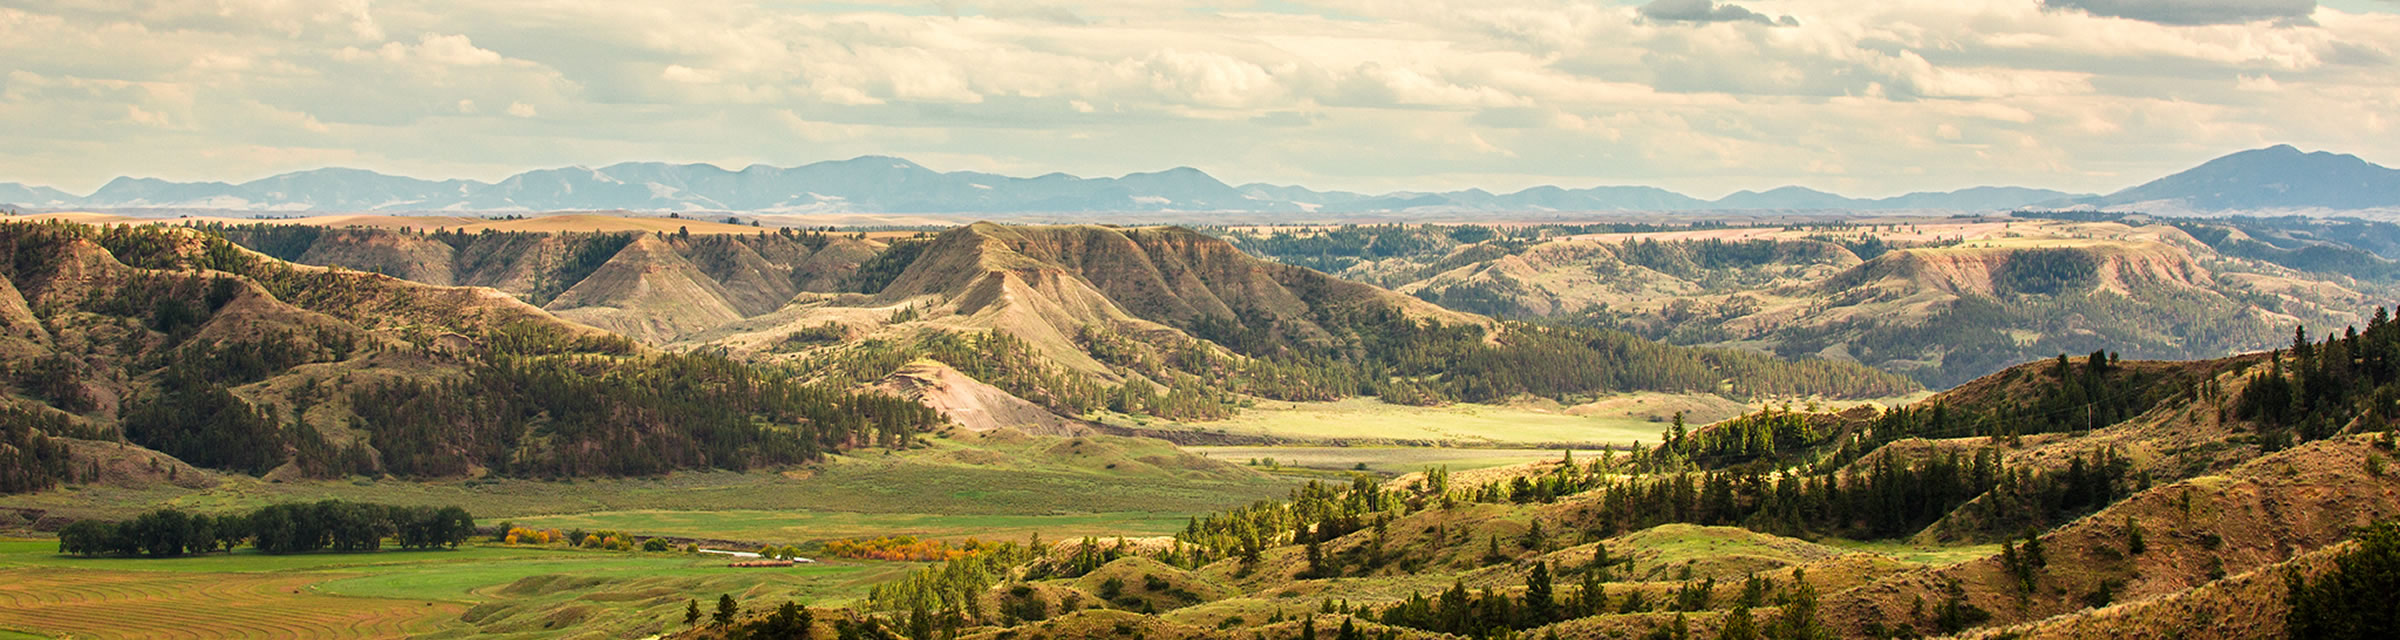 Vacation Planning & Tours